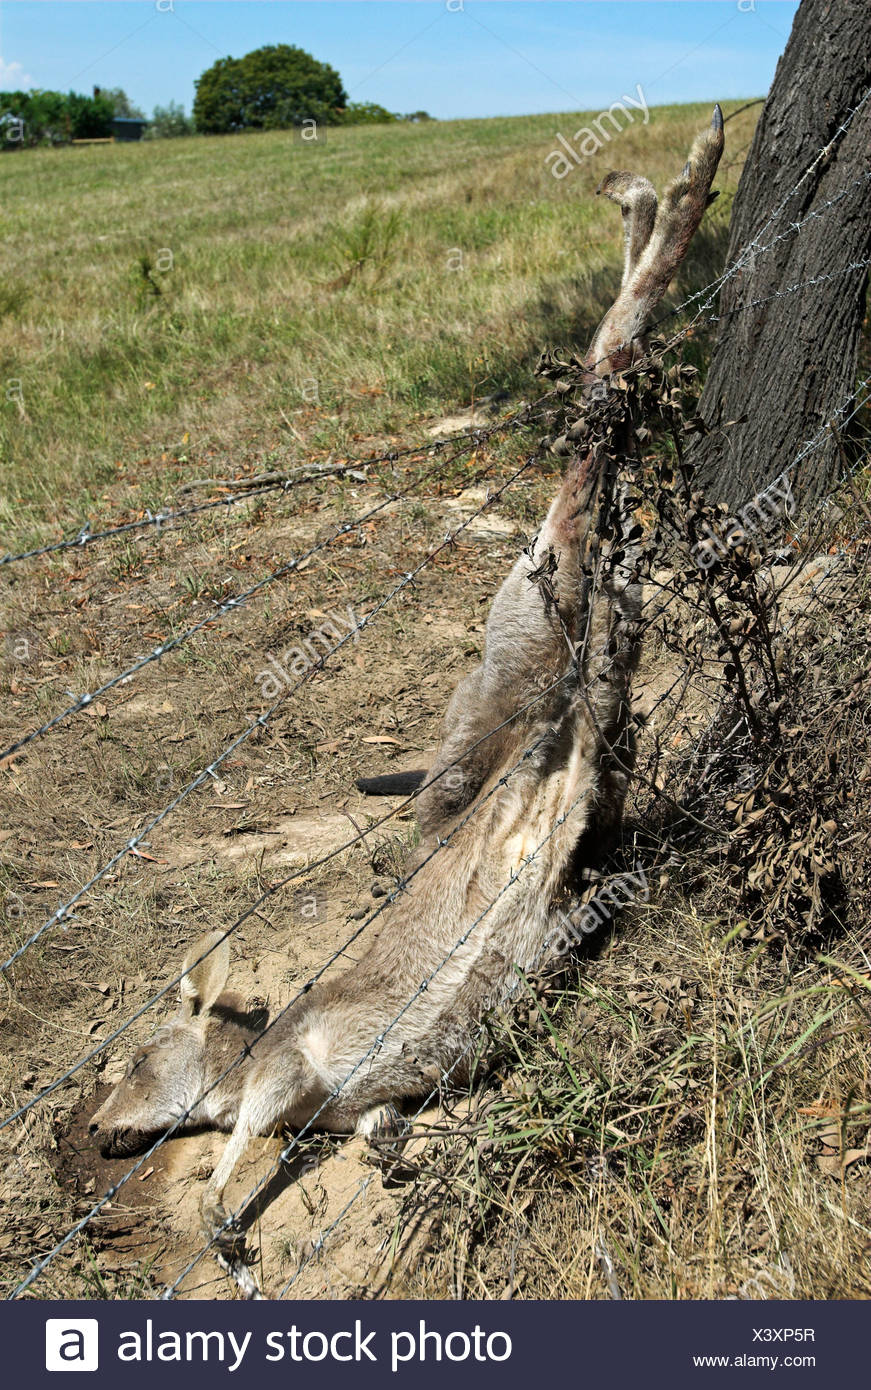 Injured kangaroo in a barb wire fence, State of Victoria, Australia - Stock Image